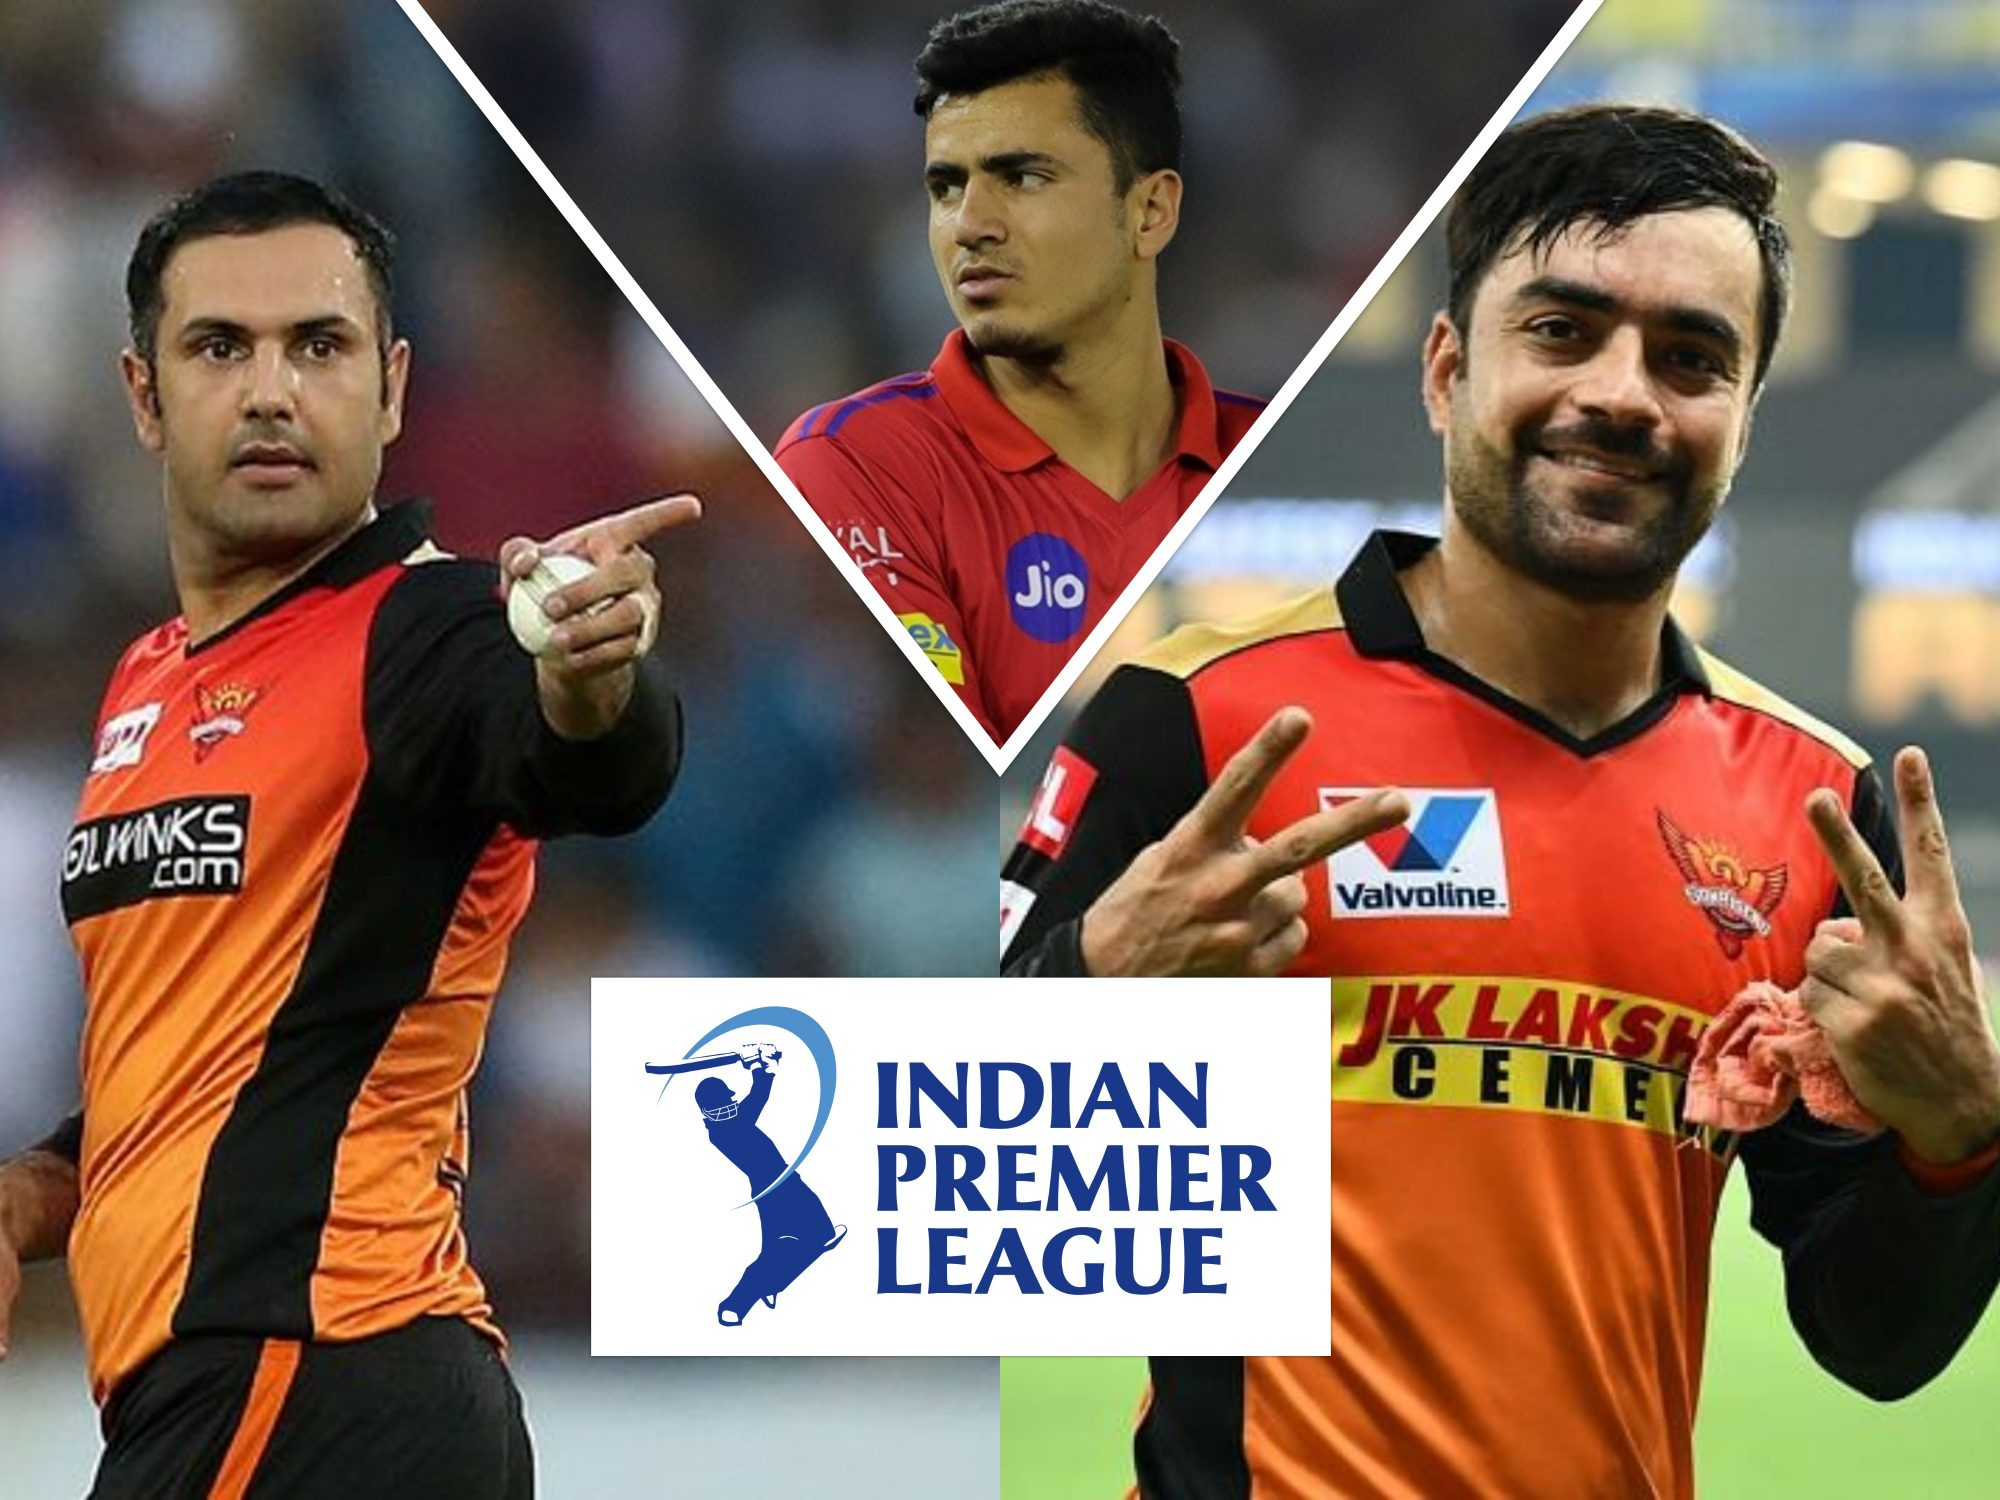 Afghanistan Players in IPL 2021